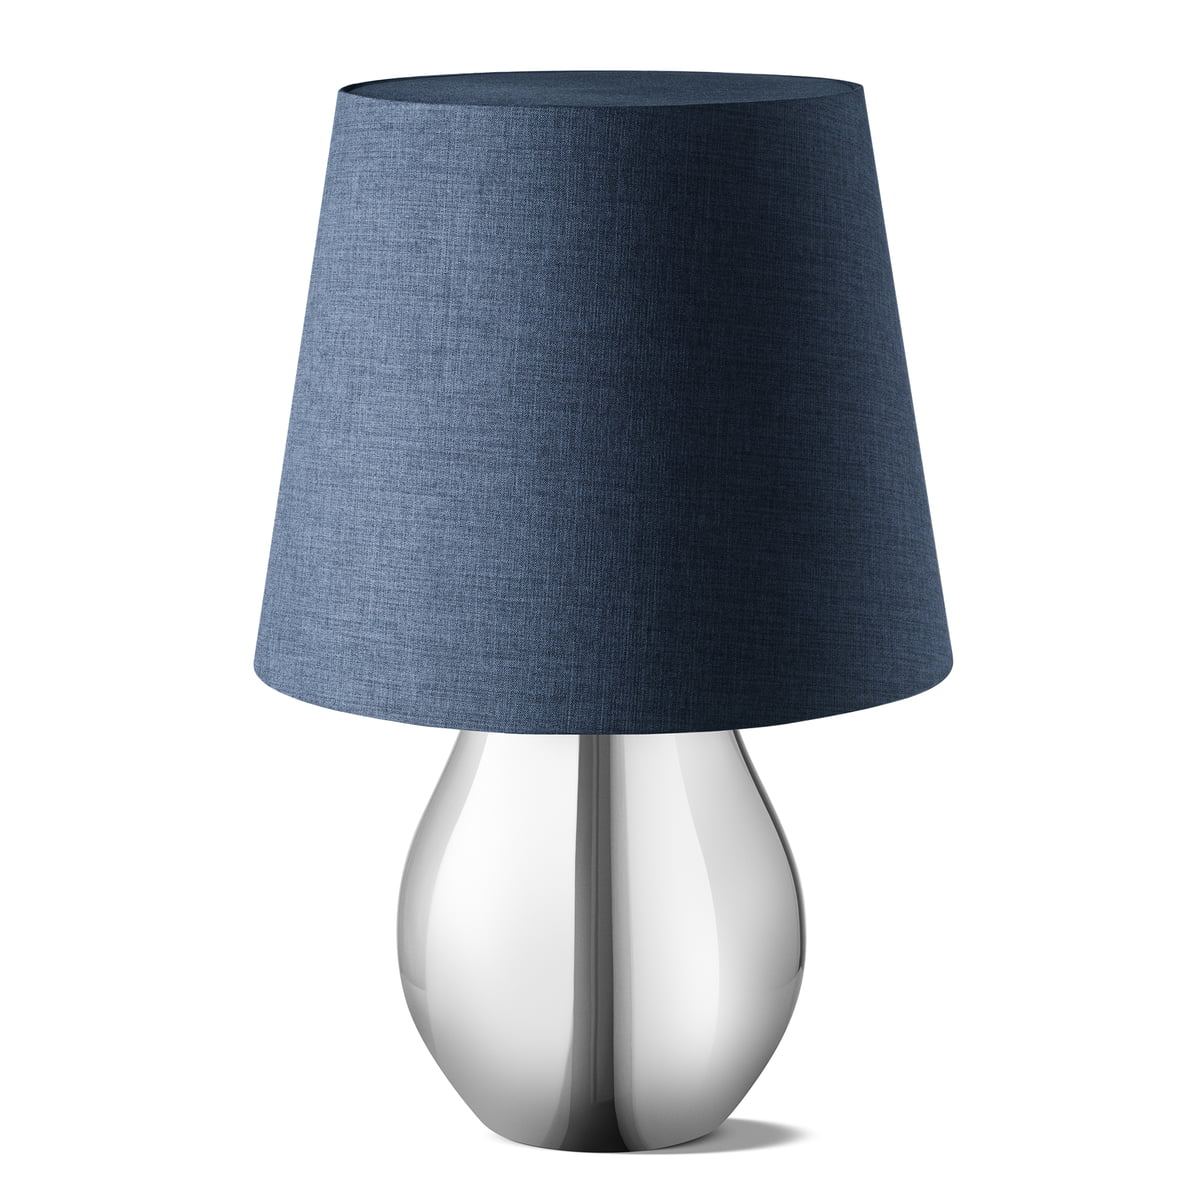 Cafu table lamp by georg jensen cafu table lamp small by georg jensen out of steel aloadofball Images